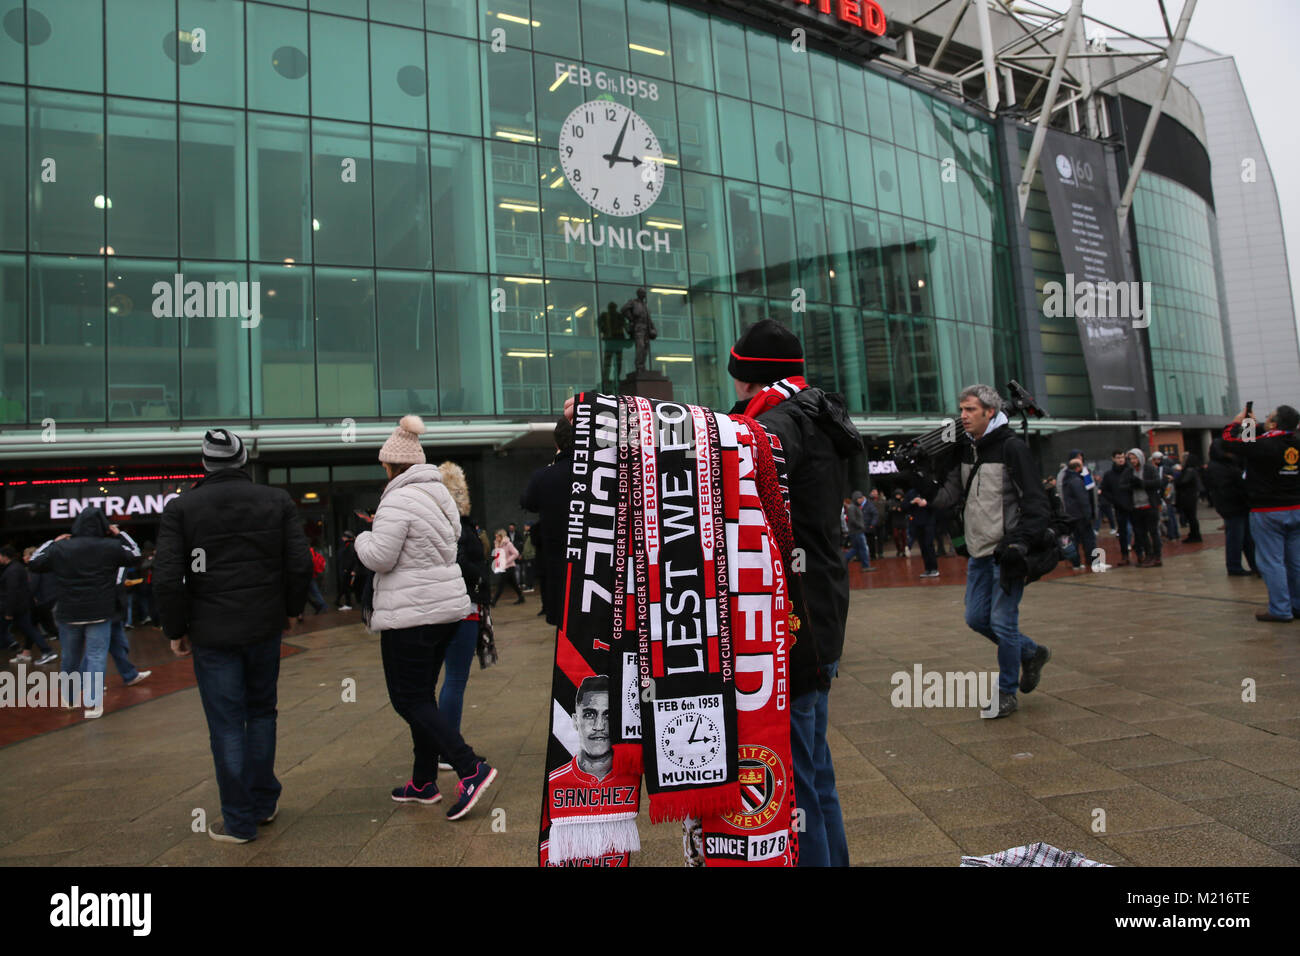 Manchester, UK, 3 Feb 2018. A scarf seller on the 60th anniversary of the Munich Air Disaster. On the 6th February - Stock Image